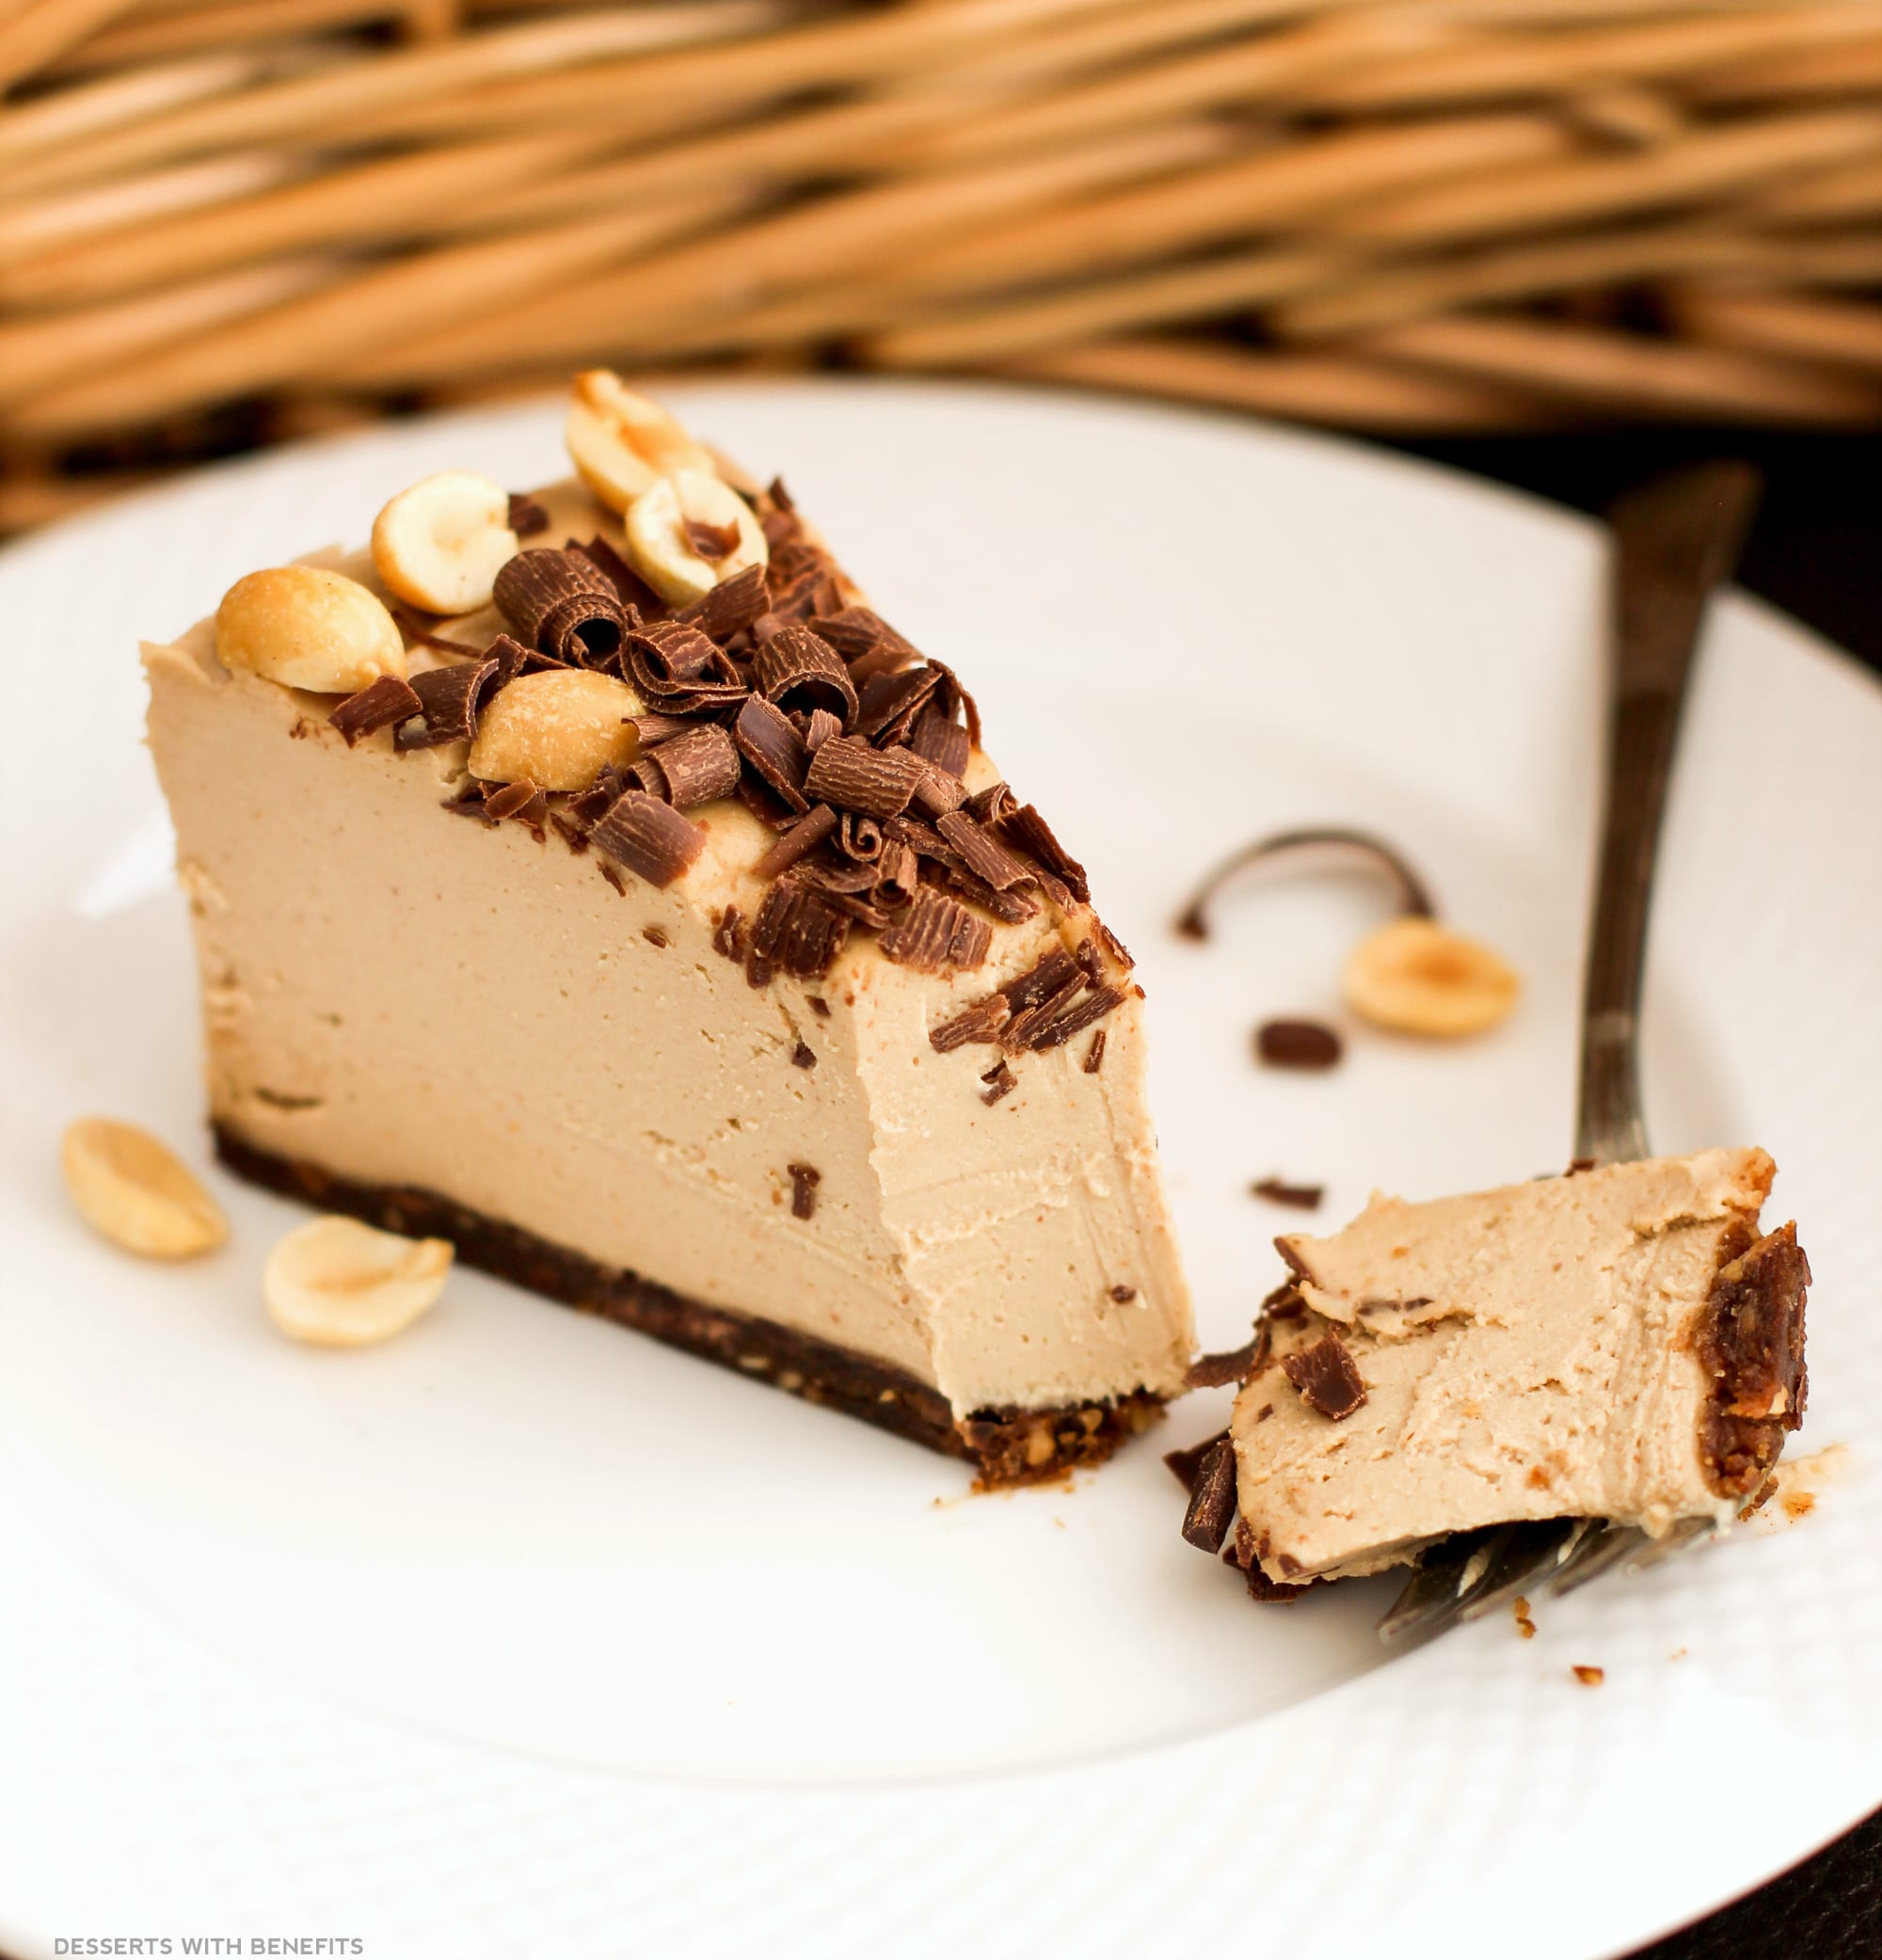 Healthy Peanut Butter Dessert Recipes  Desserts With Benefits Healthy Chocolate Peanut Butter Raw